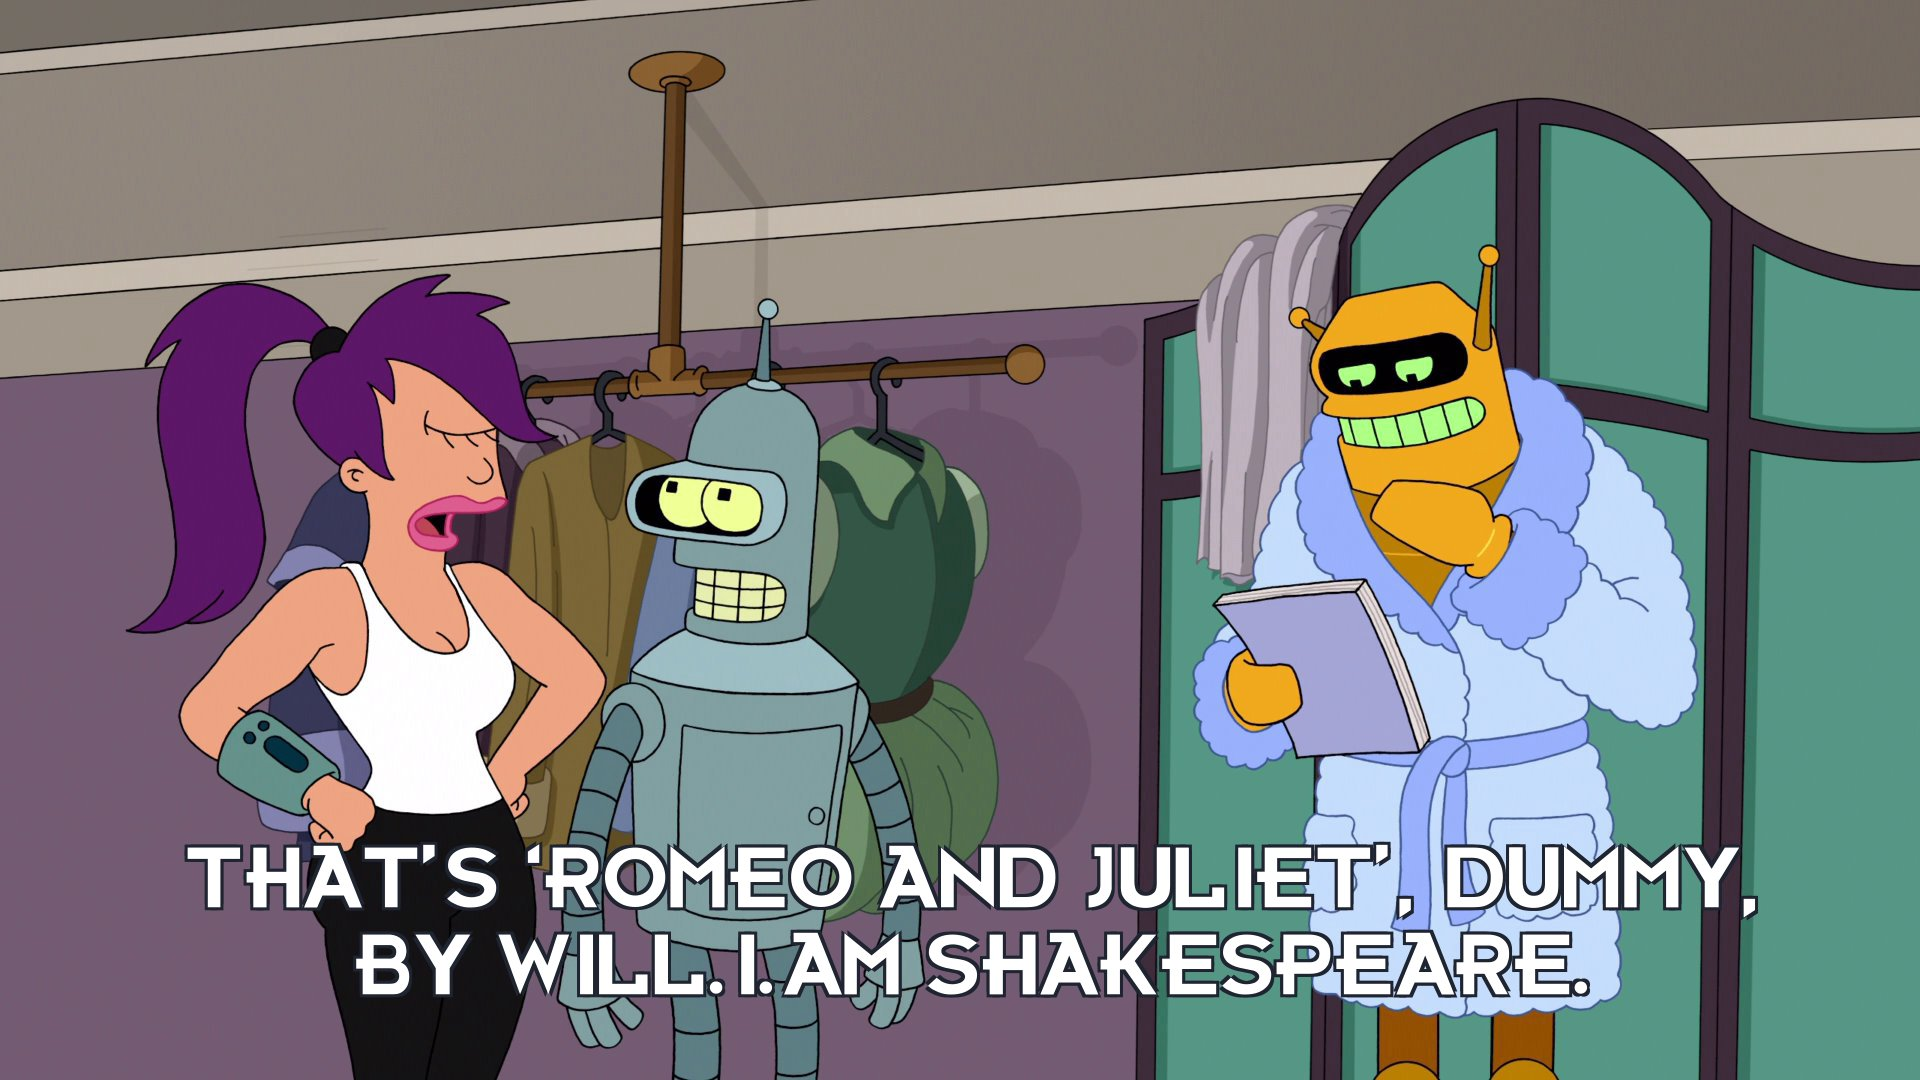 Turanga Leela: That's 'Romeo and Juliet', dummy, by will.i.am Shakespeare.